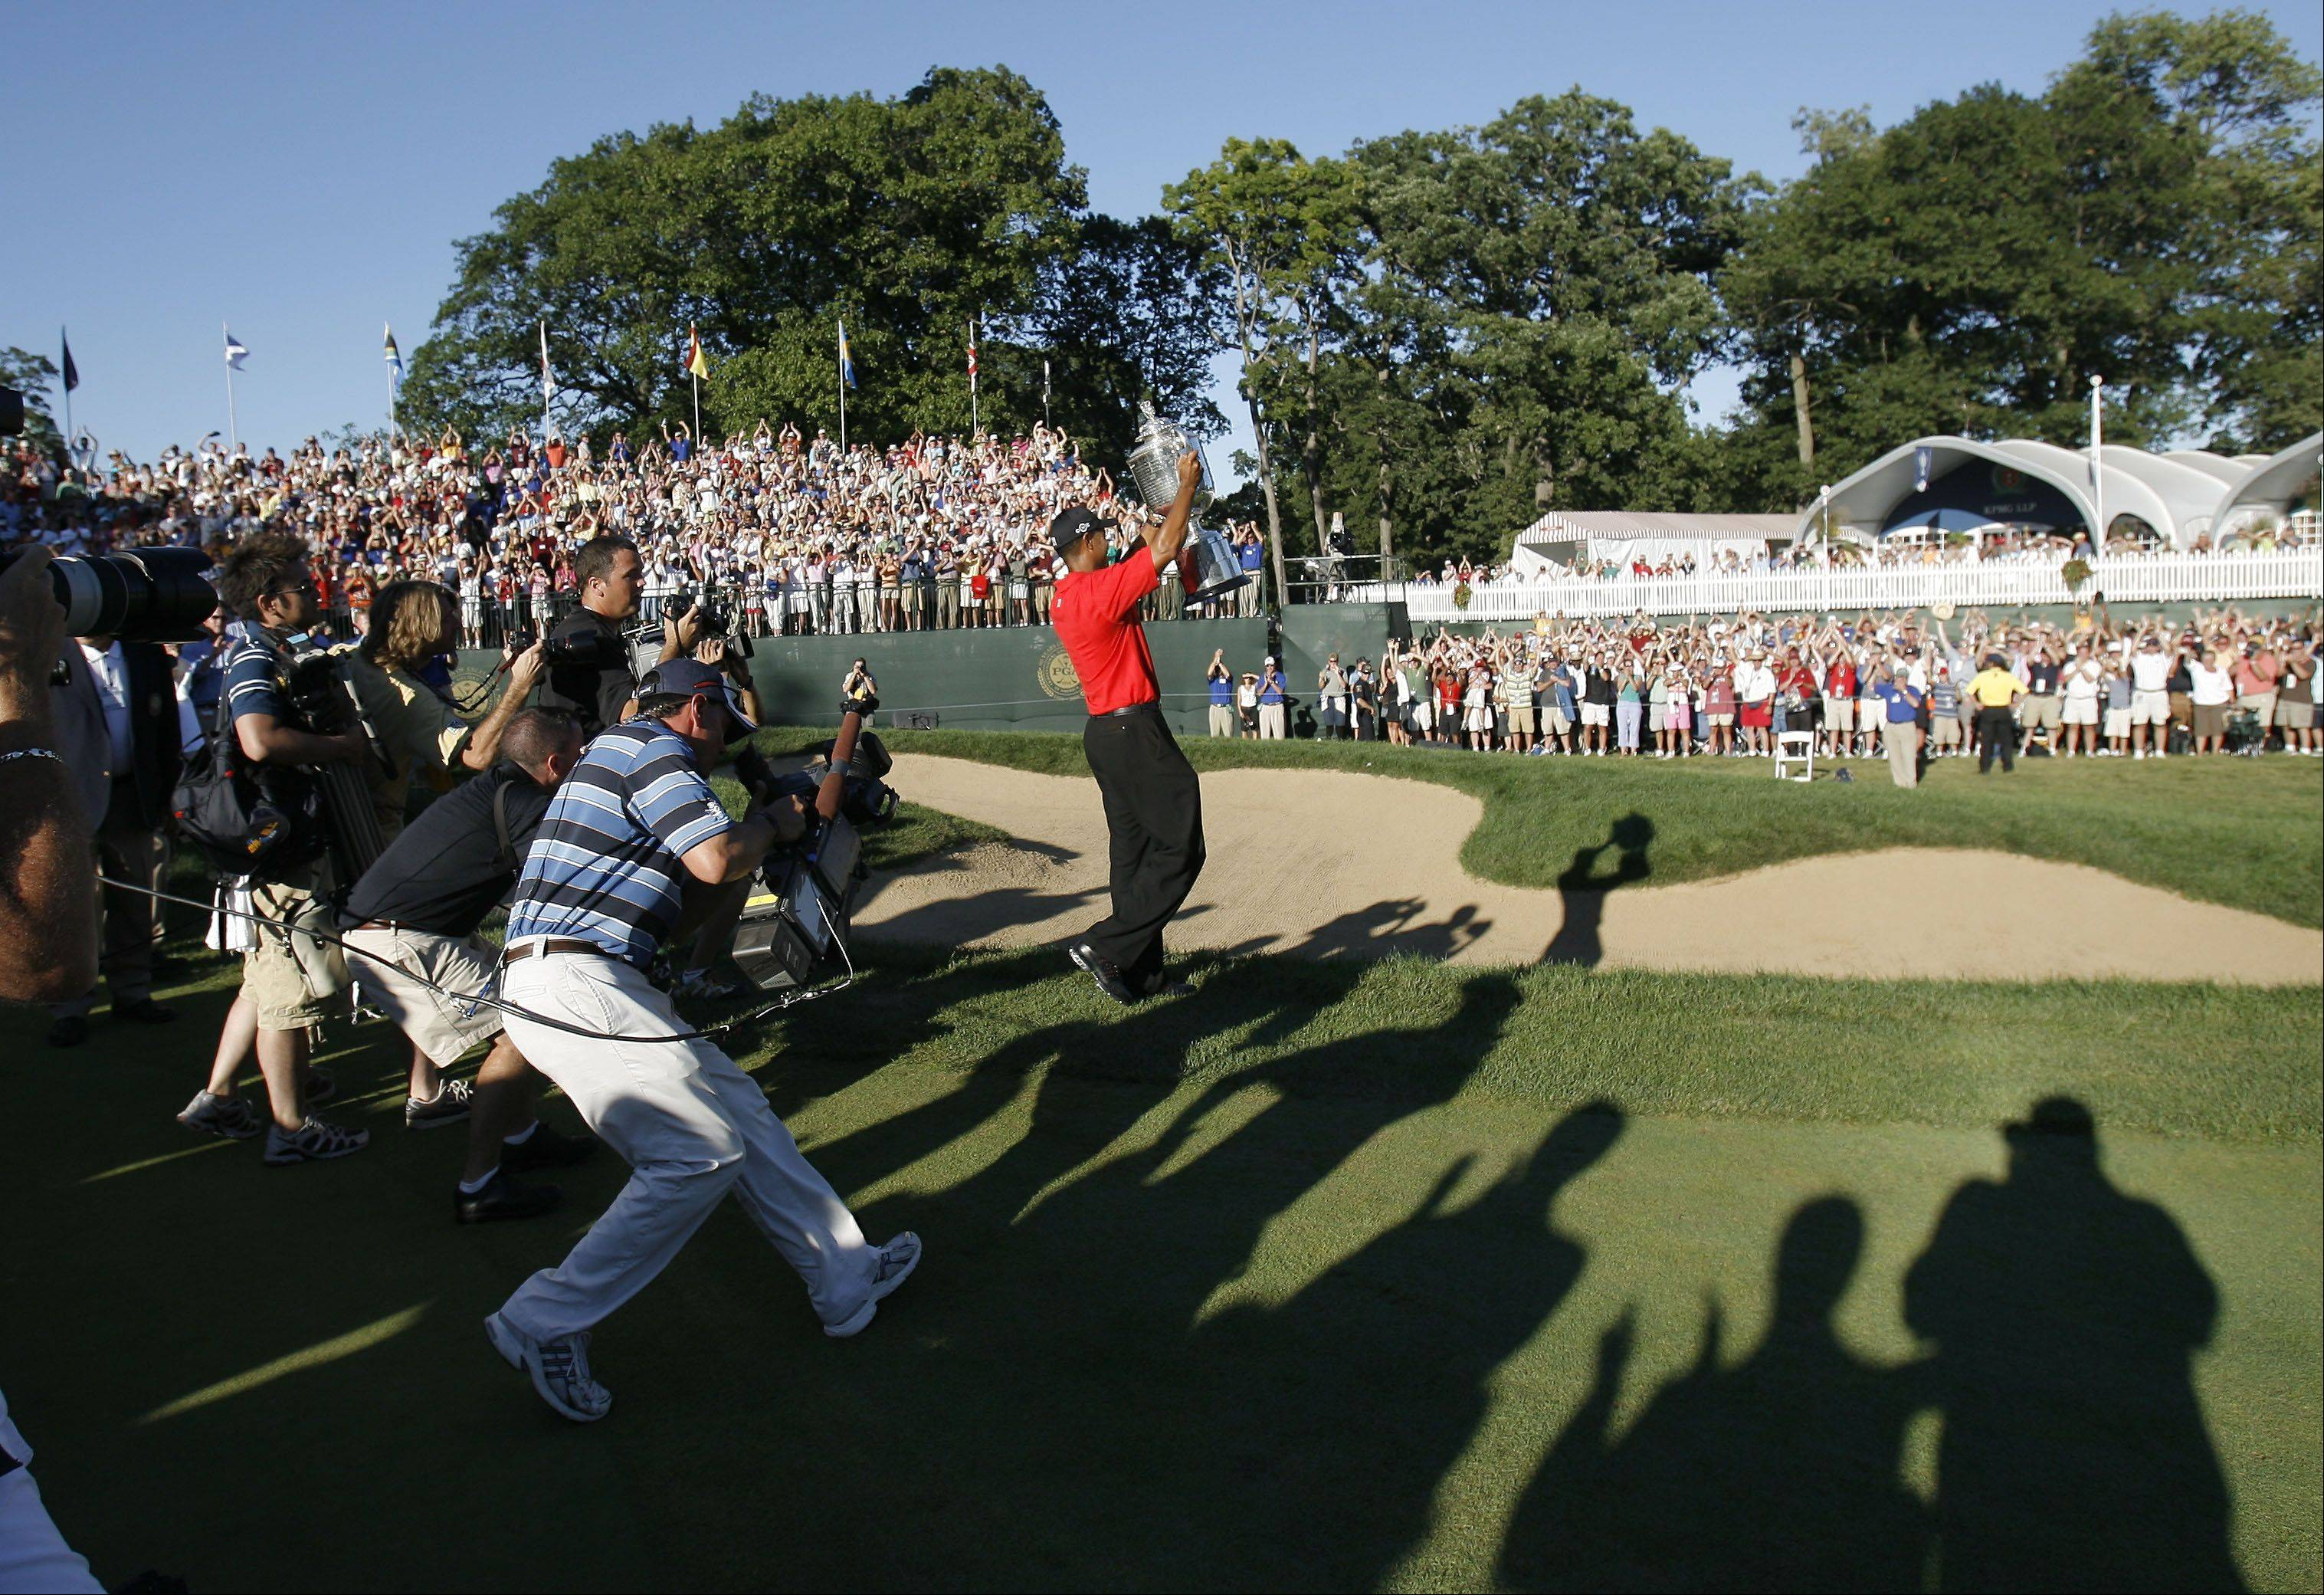 The 39th annual Ryder Cup tournament will completely close Medinah Road for a week when it comes to Medinah County Club in September 2012, but schools in Medinah District 11 vow to remain open as much as possible.